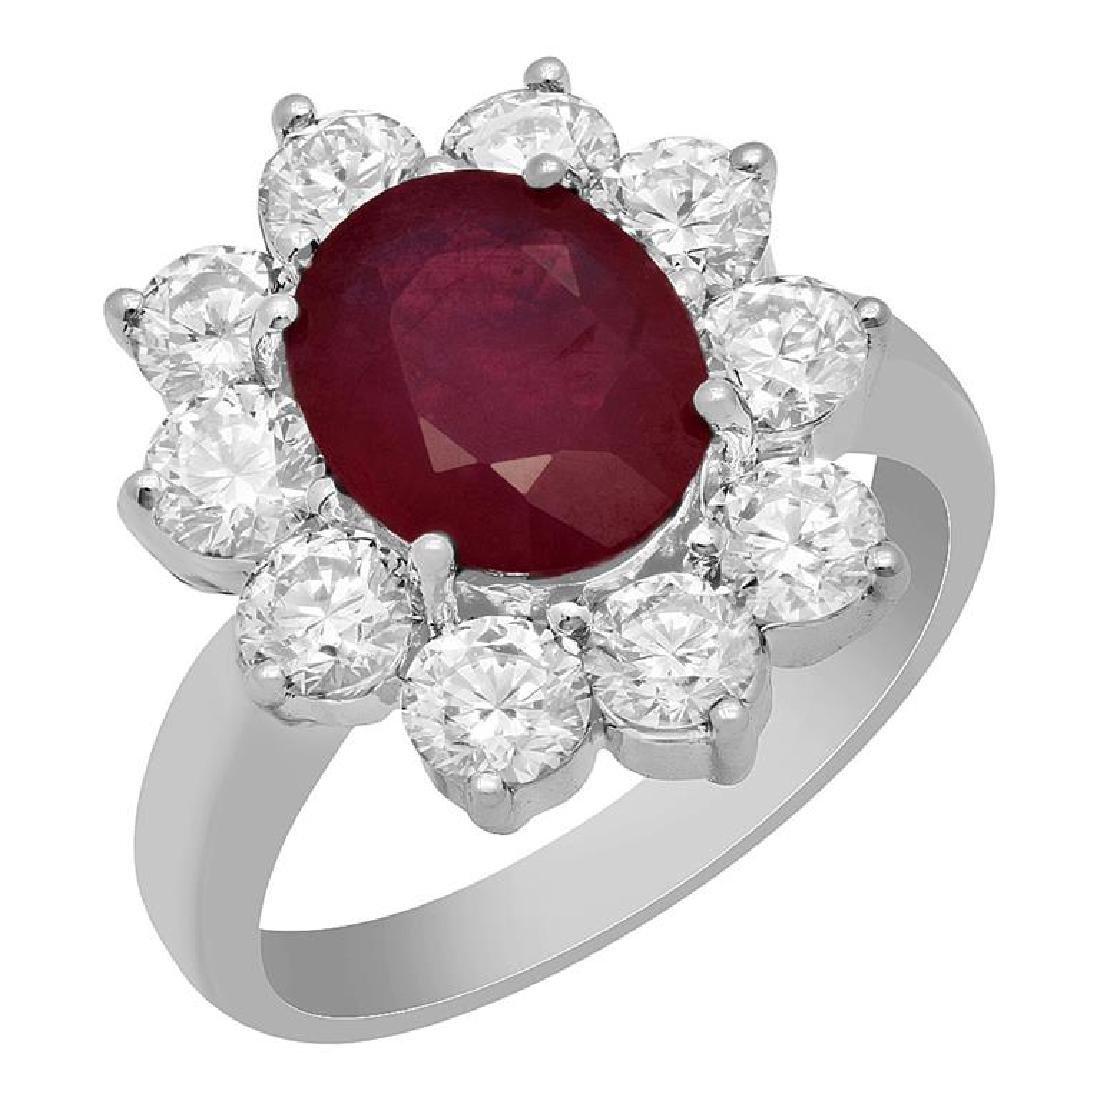 14k White Gold 2.86ct Ruby 2.18ct Diamond Ring